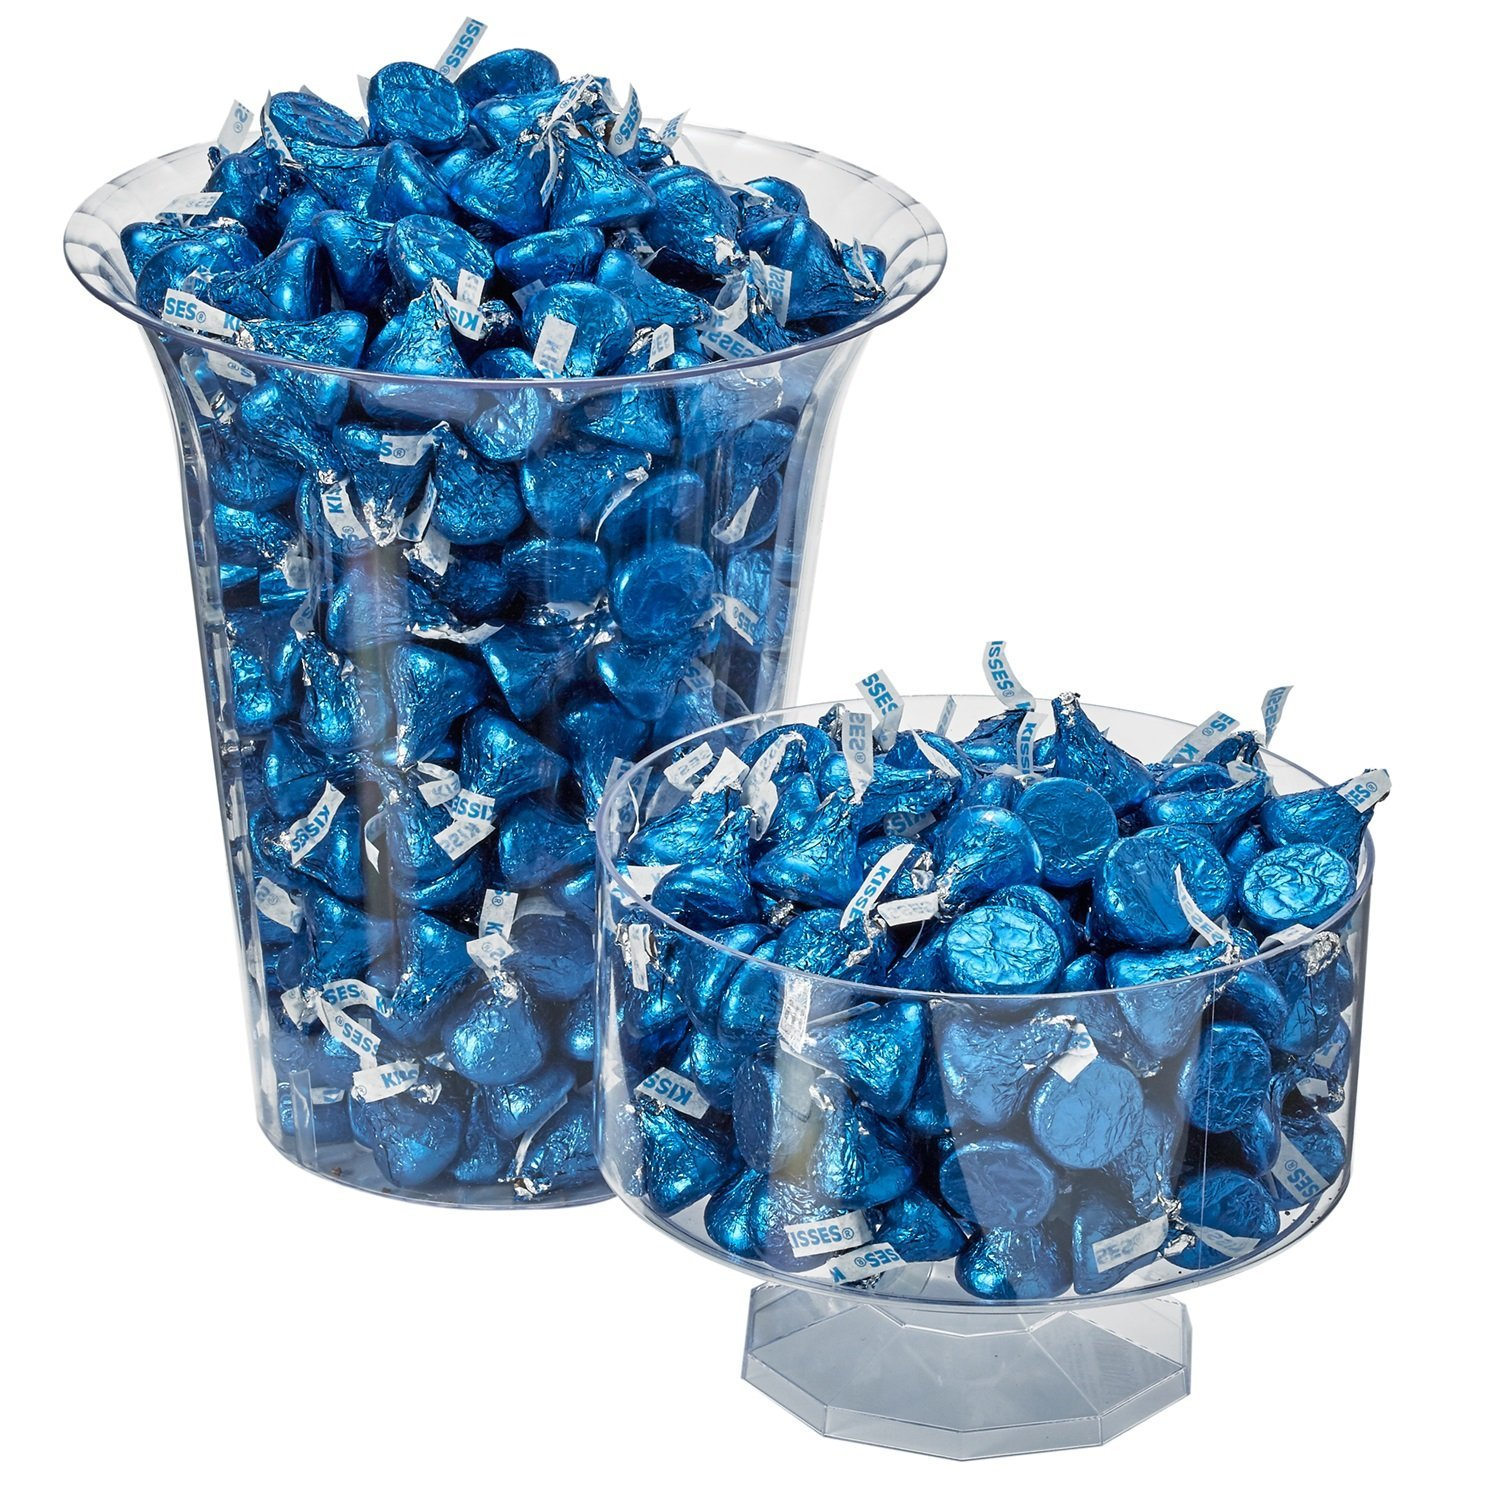 HERSHEY'S KISSES Chocolate Candy, Dark Blue Foils, 4.1lb Bulk Candy, approx. 400 Pieces. Perfect for Graduation and 4th of July Decorations by Kisses (Image #10)